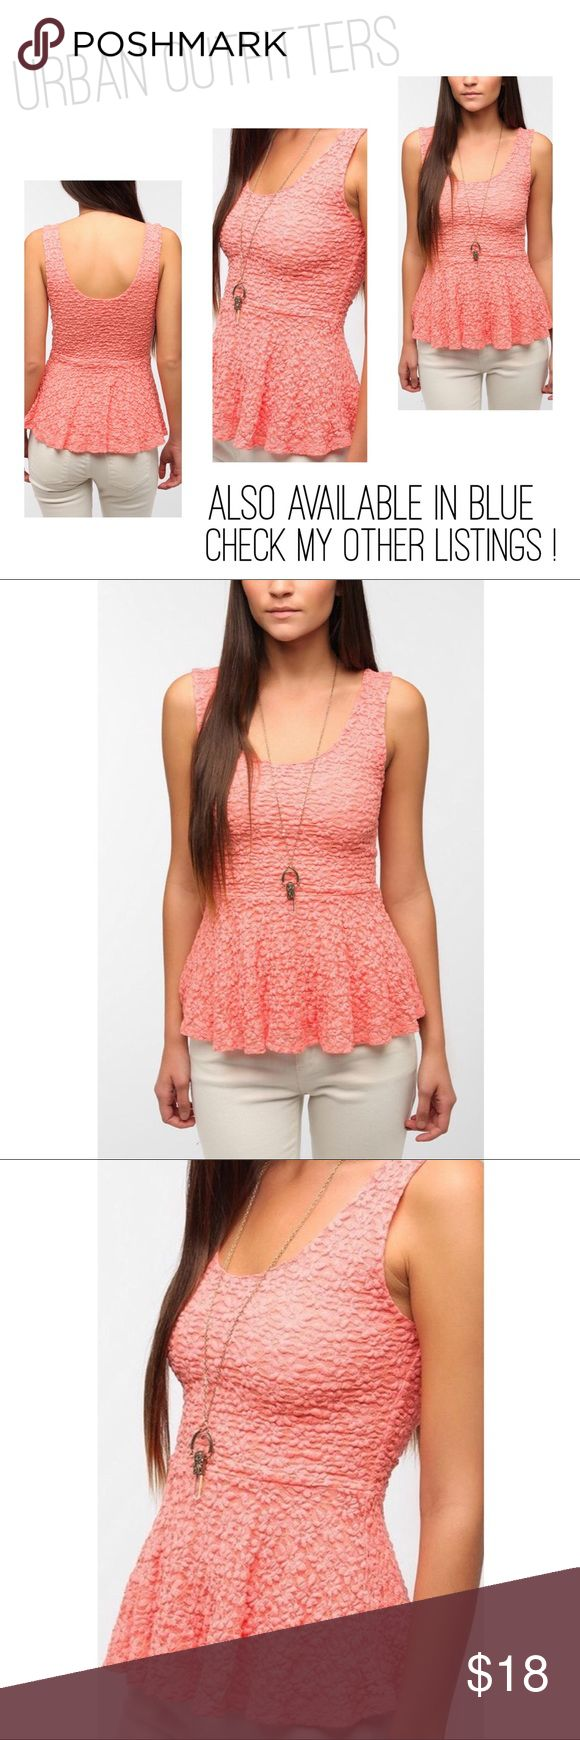 URBAN OUTFITTERS Pins & Needles Daisy Peplum Top .Urban Outfitters! Super-soft knit tank top from Pins and Needles. Lightweight construction with a daisy lace overlay. Topped with a skirted peplum at the waist. Scoop neck in front and back. Cut in a fitted silhouette. Nylon/Rayon/Spandex. Great condition! Worn twice! As seen on Ariana Grande! 😎 Urban Outfitters Tops